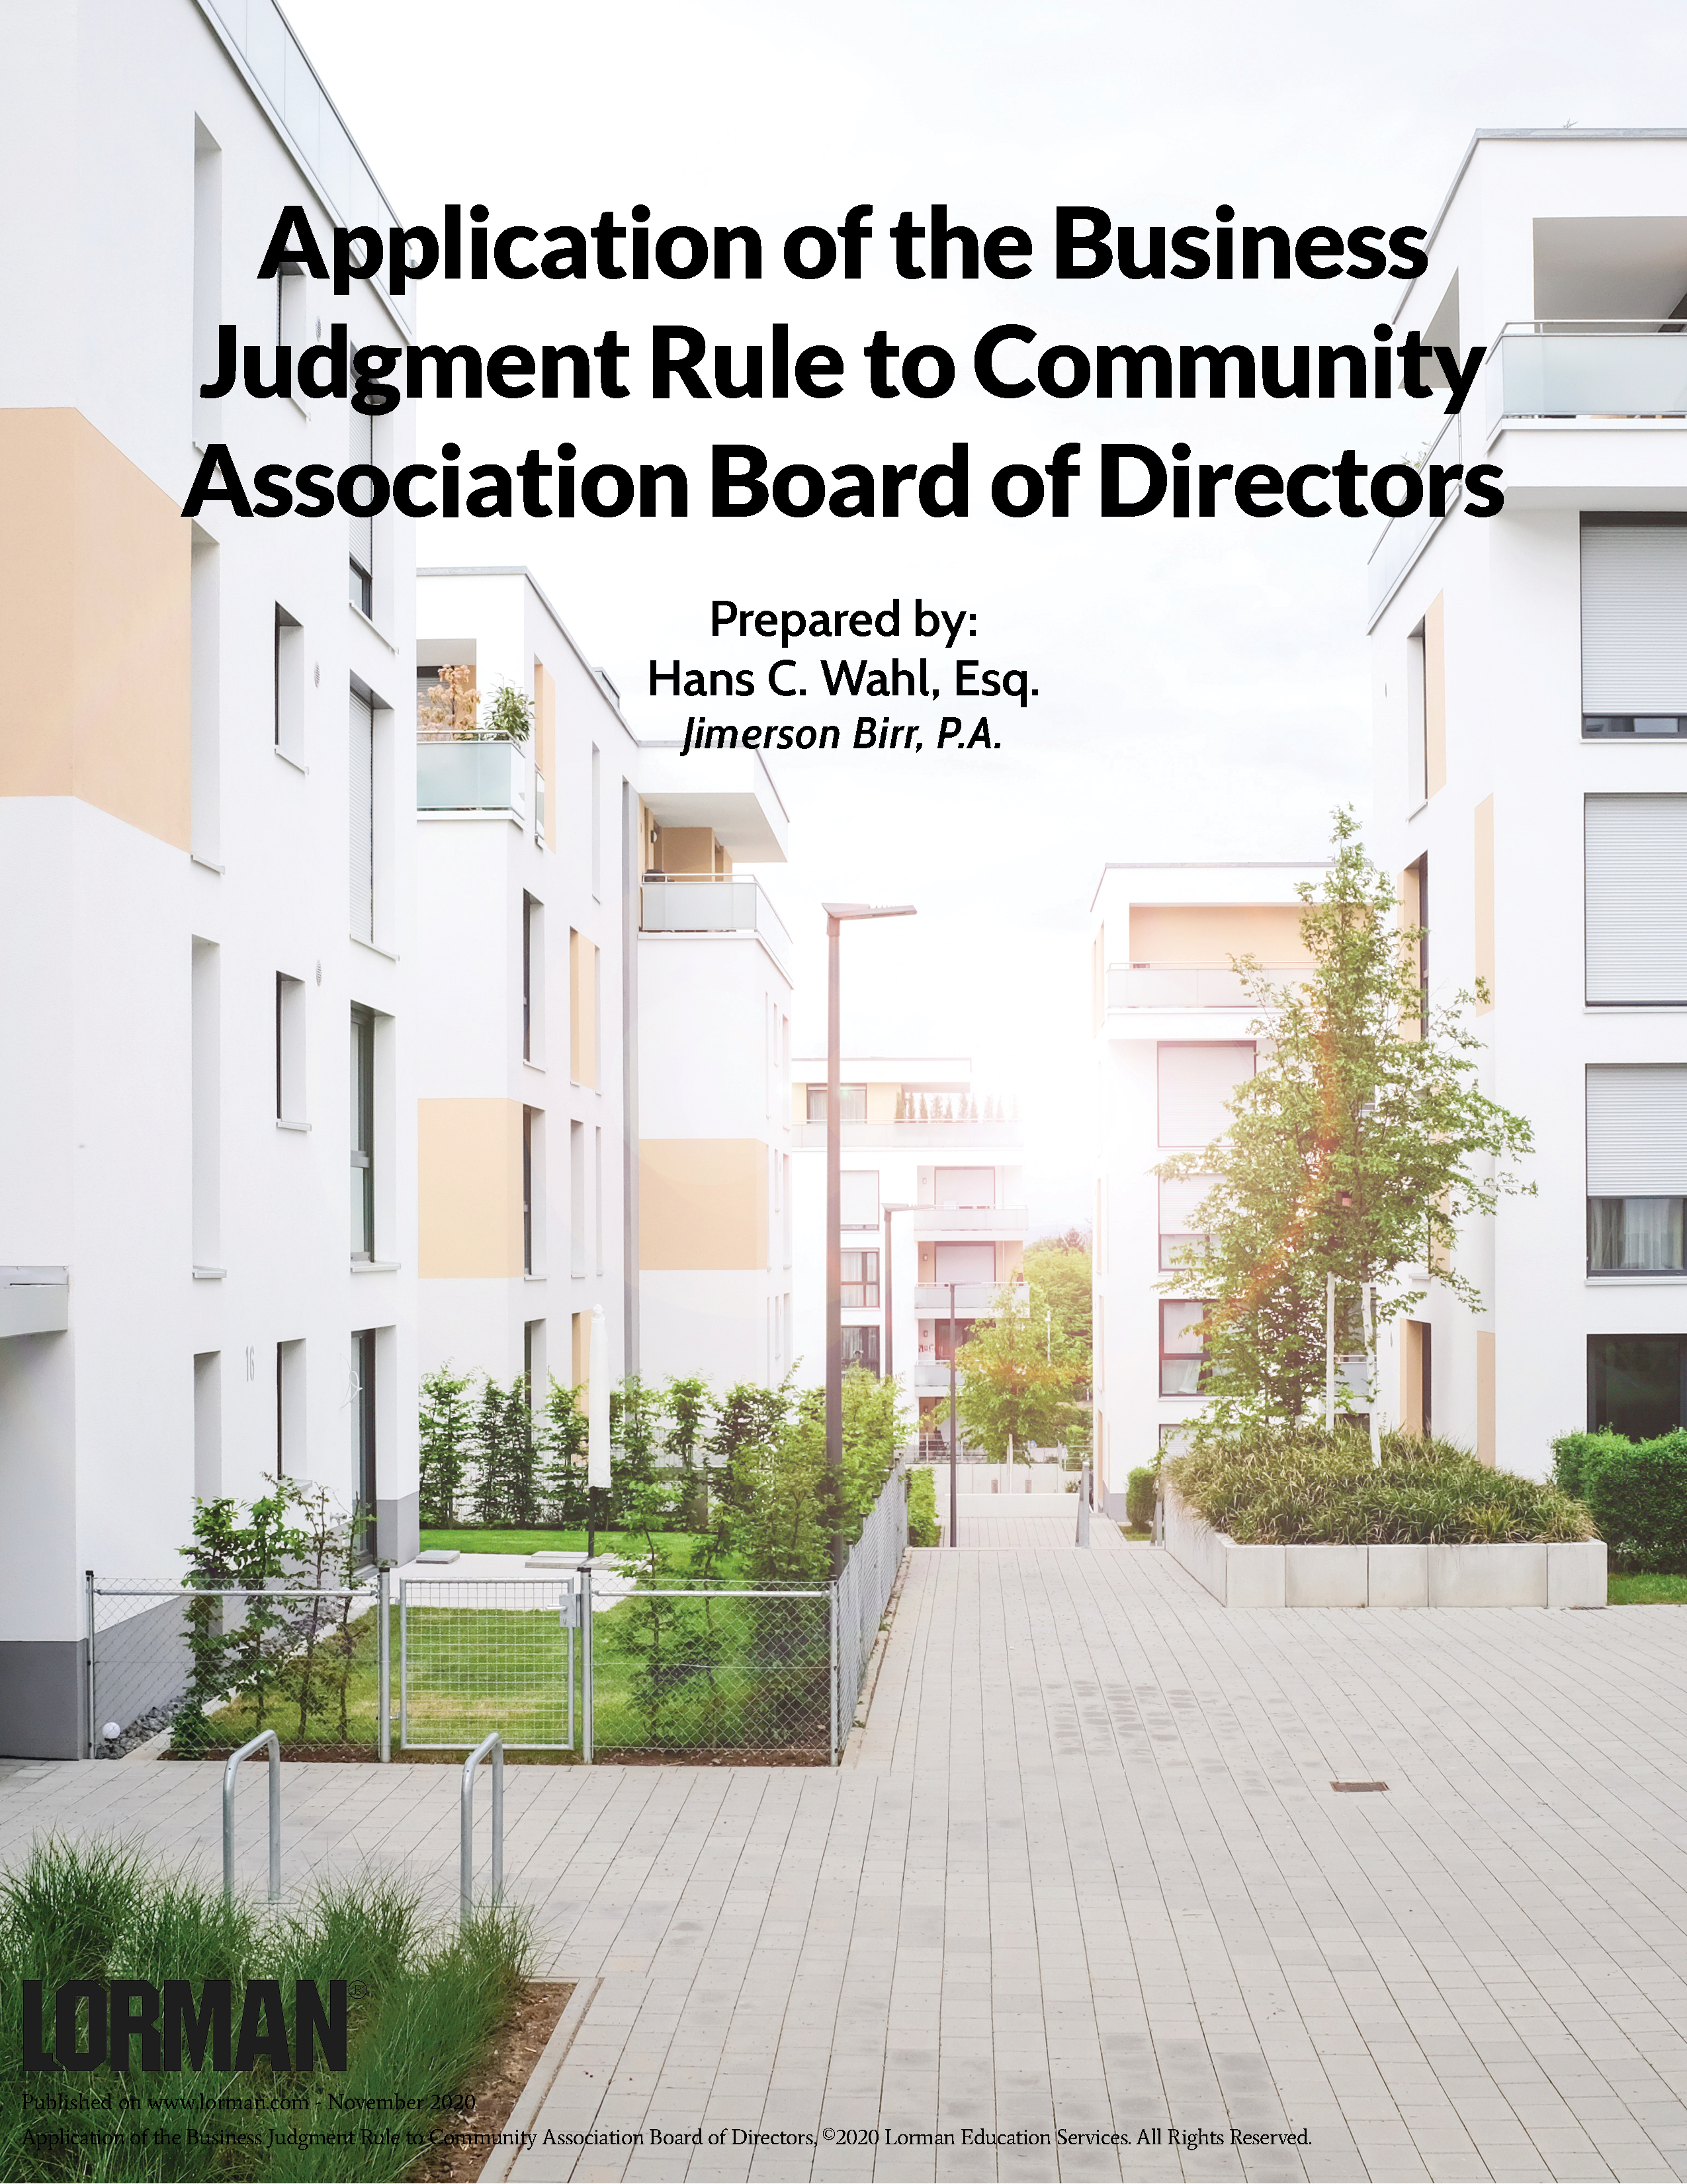 Application of the Business Judgment Rule to Community Association Board of Directors